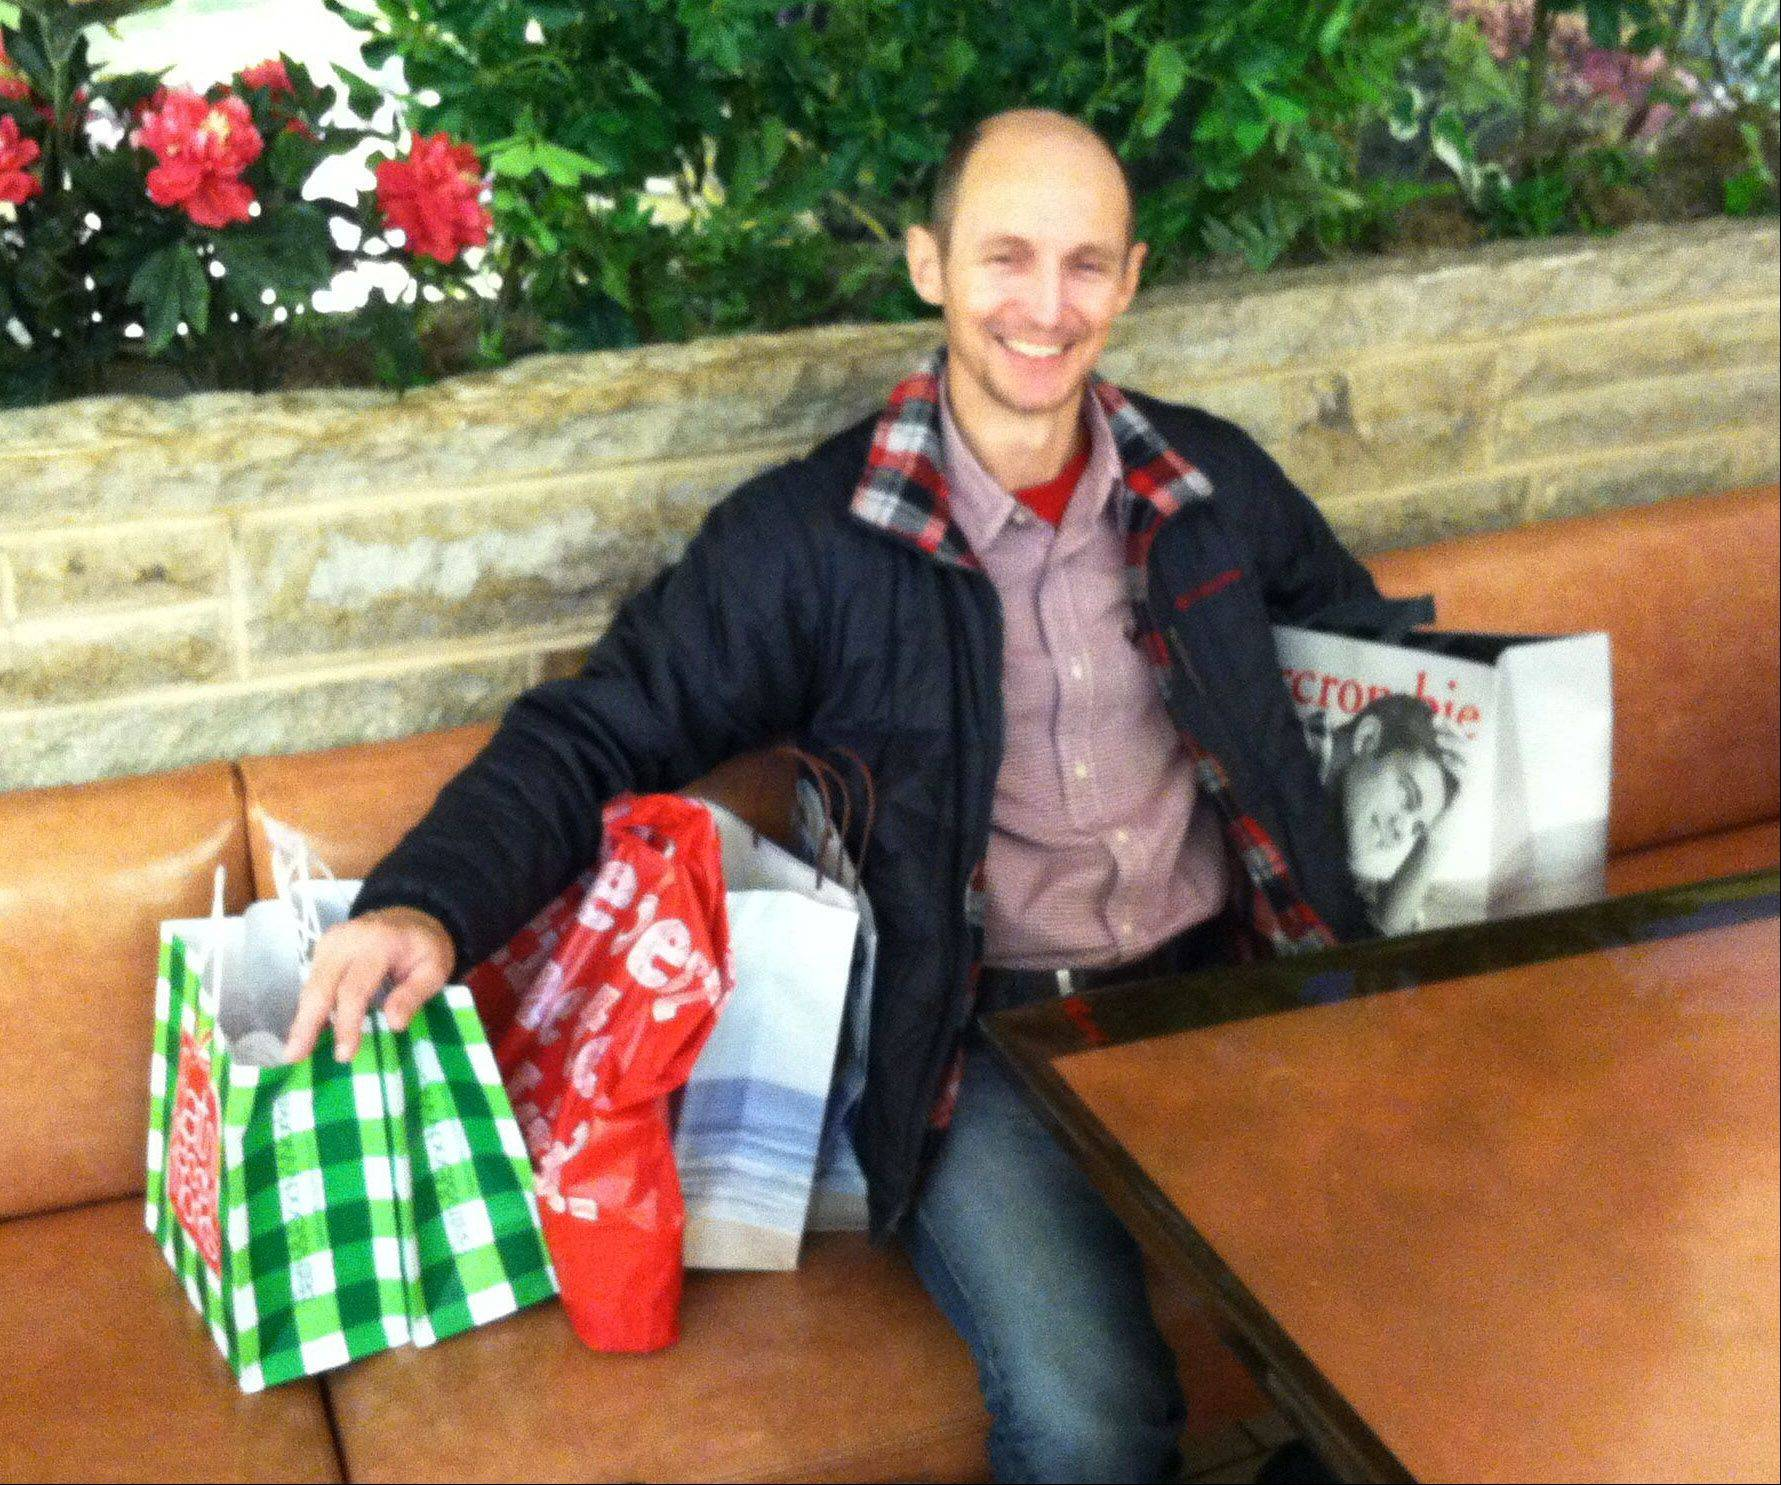 Brady Webb takes a break after finding deals at Westfield Hawthorn Mall in Vernon Hills.